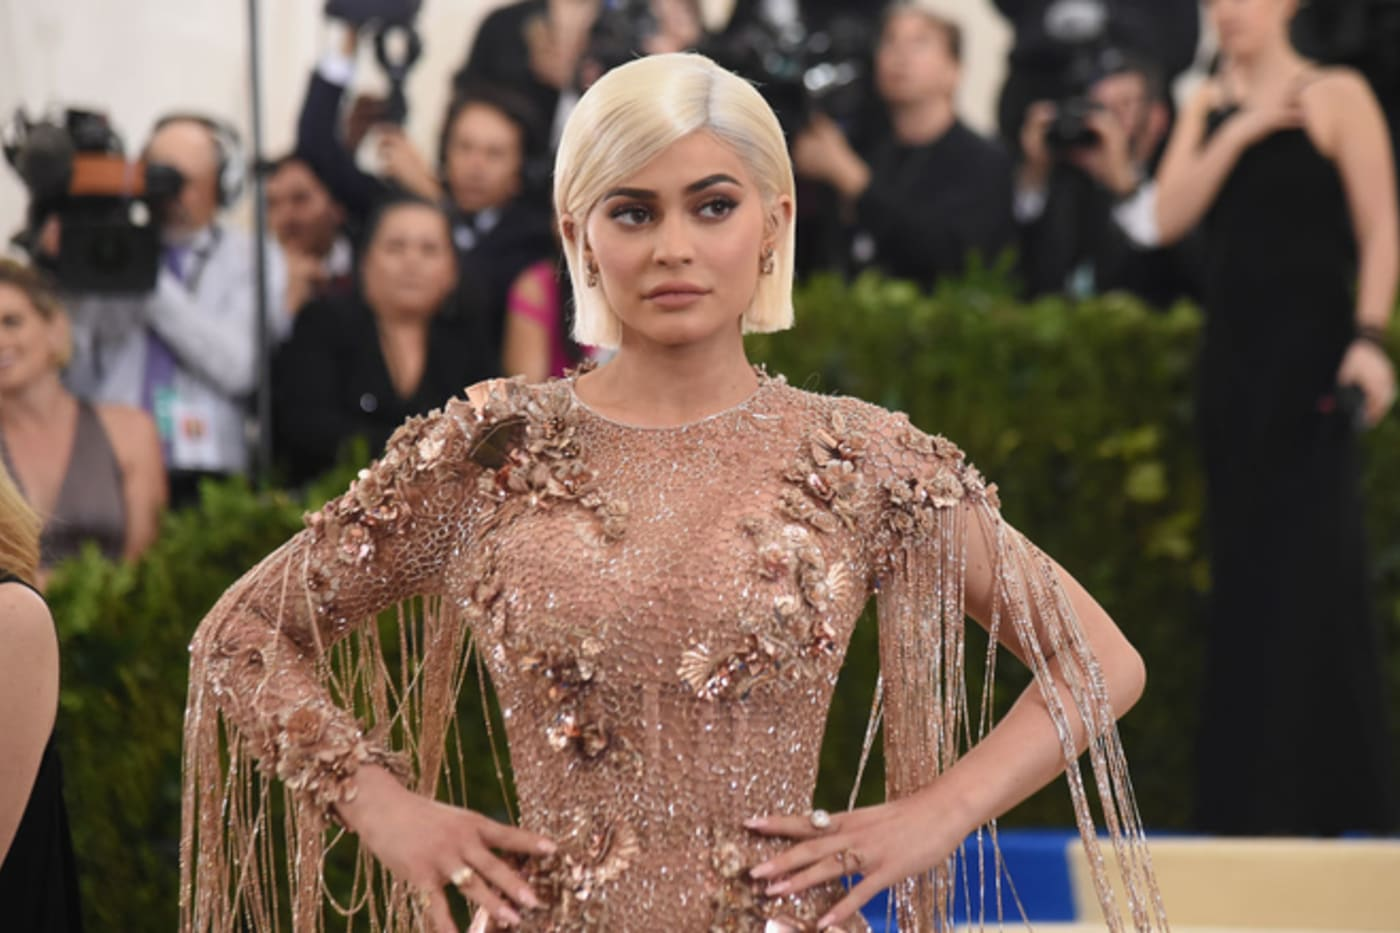 Kylie Jenner at 'Rei Kawakubo/Comme des Garcons: Art Of The In Between' Gala at the Met.